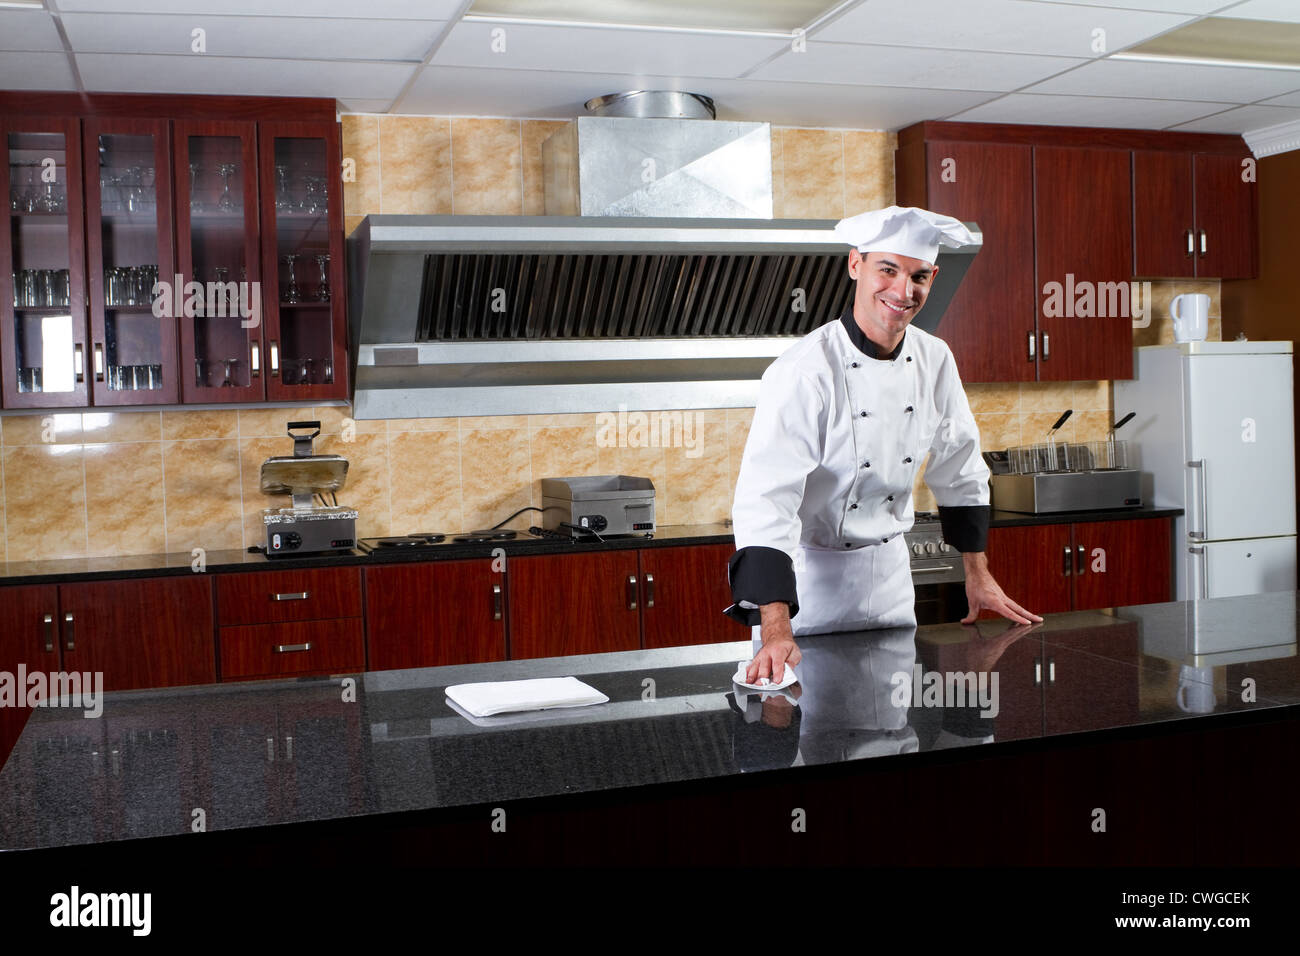 professional chef cleaning industrial kitchen - Stock Image